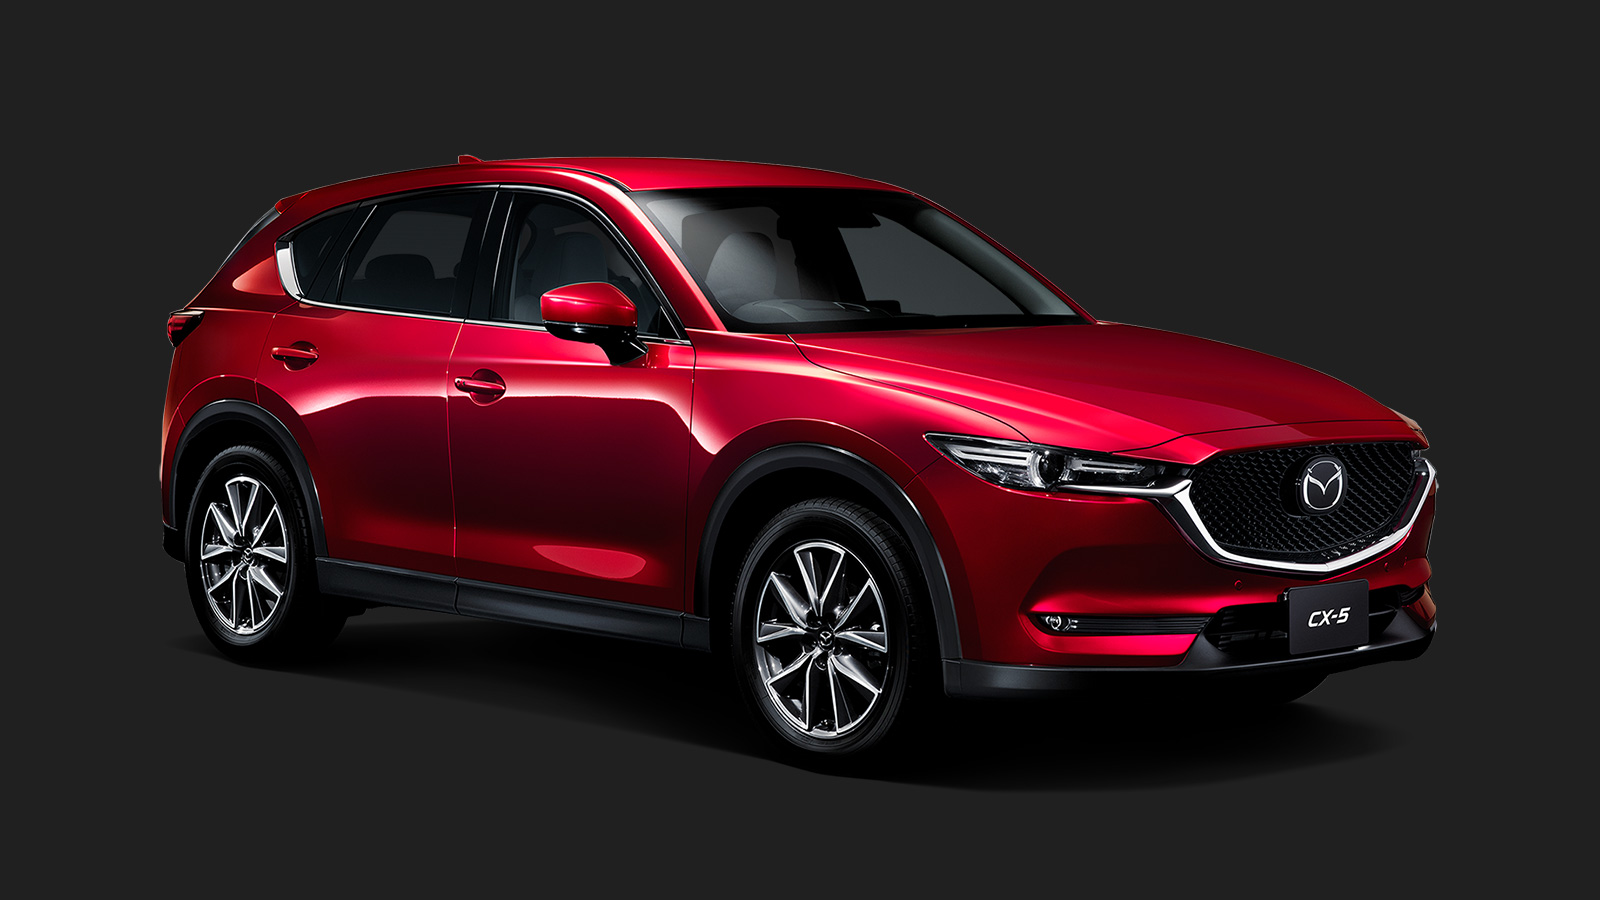 2017 mazda cx-5 specifications and prices revealed for japan